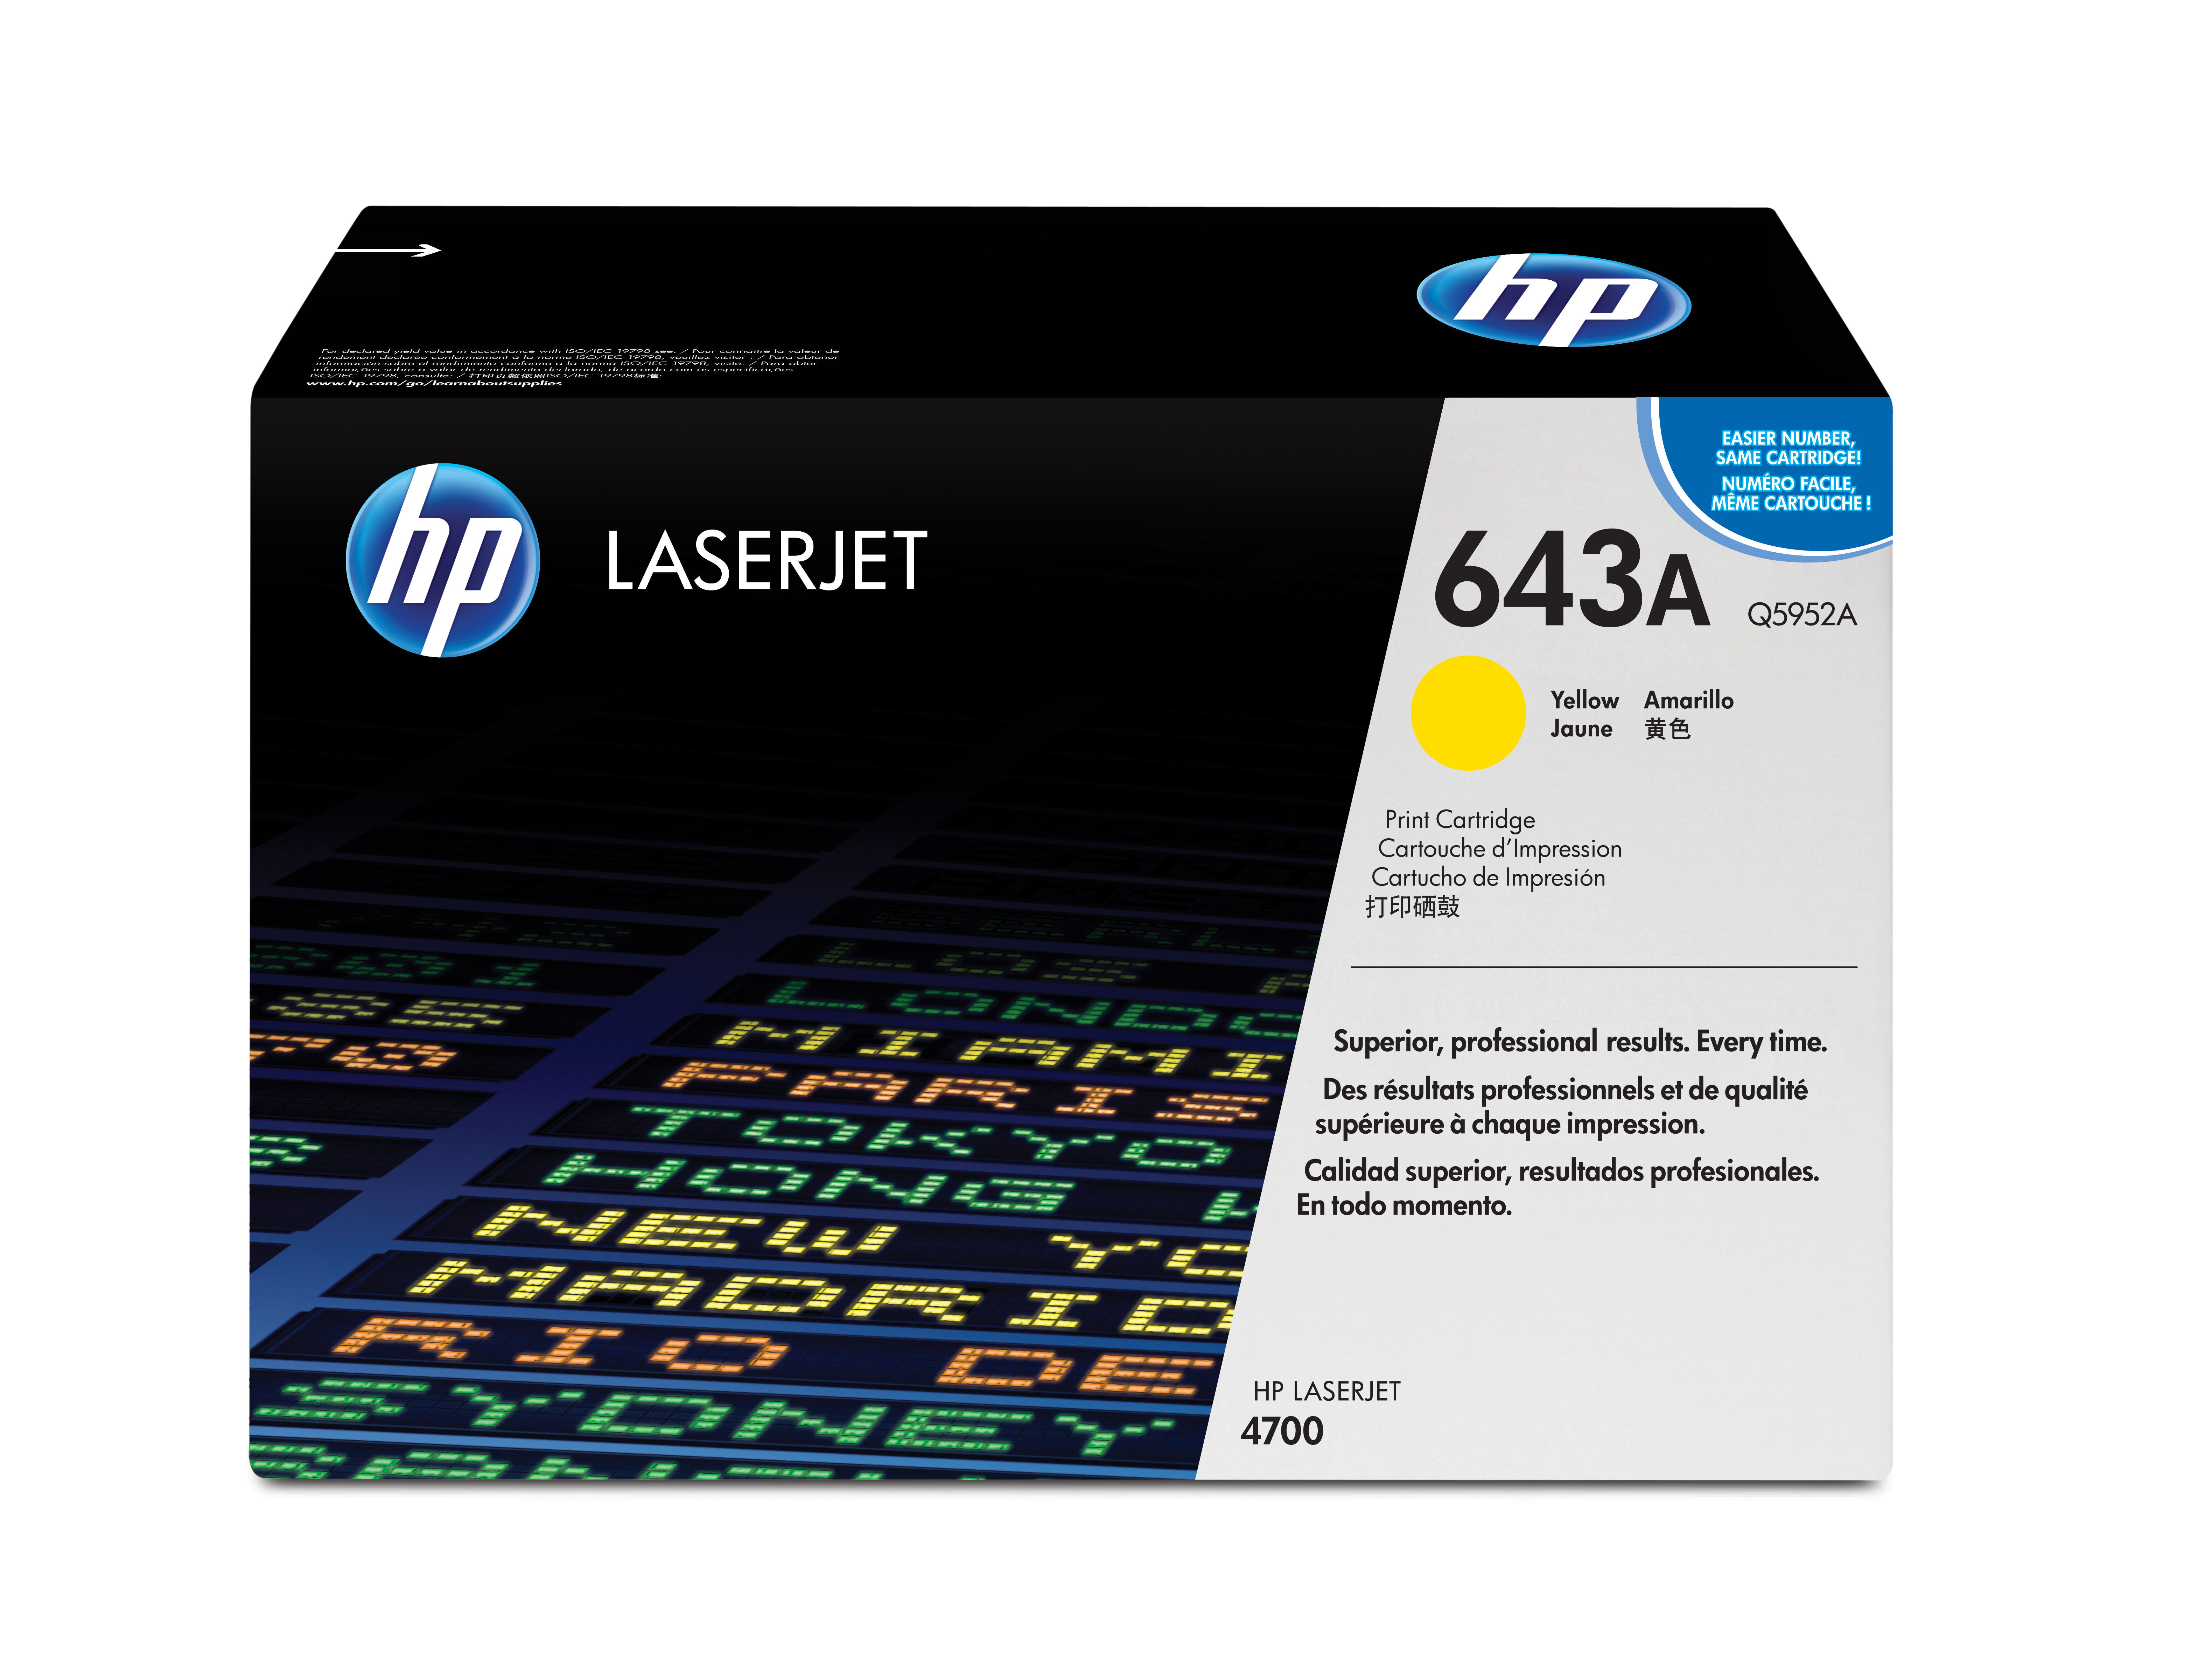 Hpq5952a       Hp 643a Yellow Laser Toner     4700 4730 Mfp Series                                         - UF01